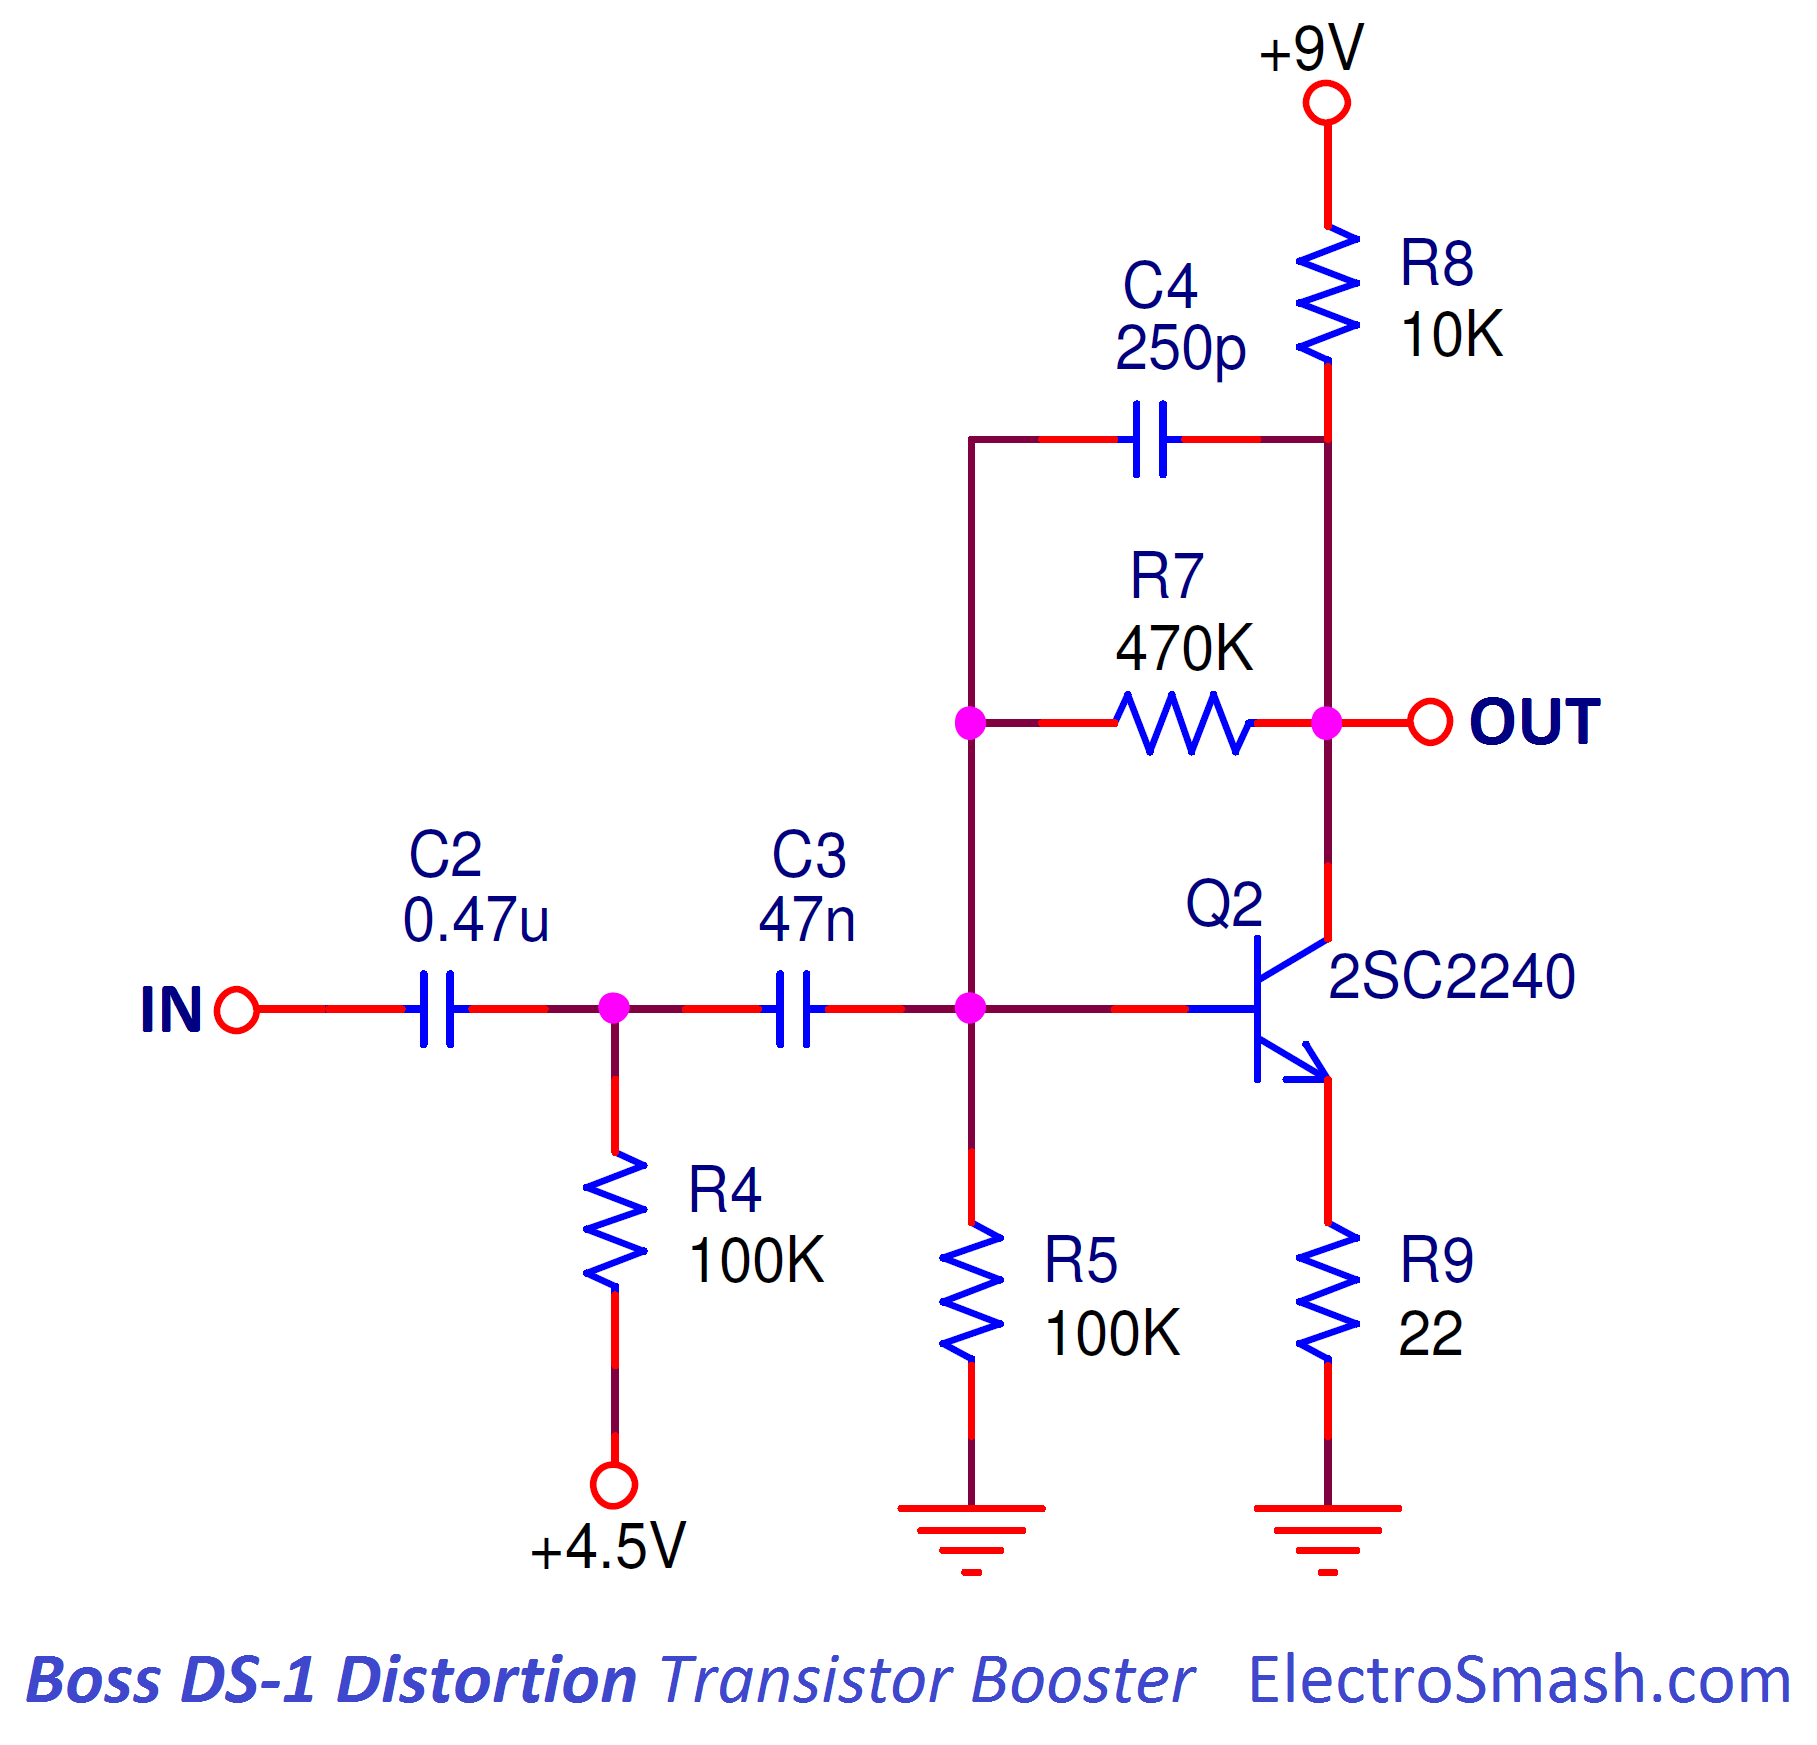 Electrosmash Boss Ds1 Distortion Analysis How To Build Op Amp Booster Designs Pdf Transistor